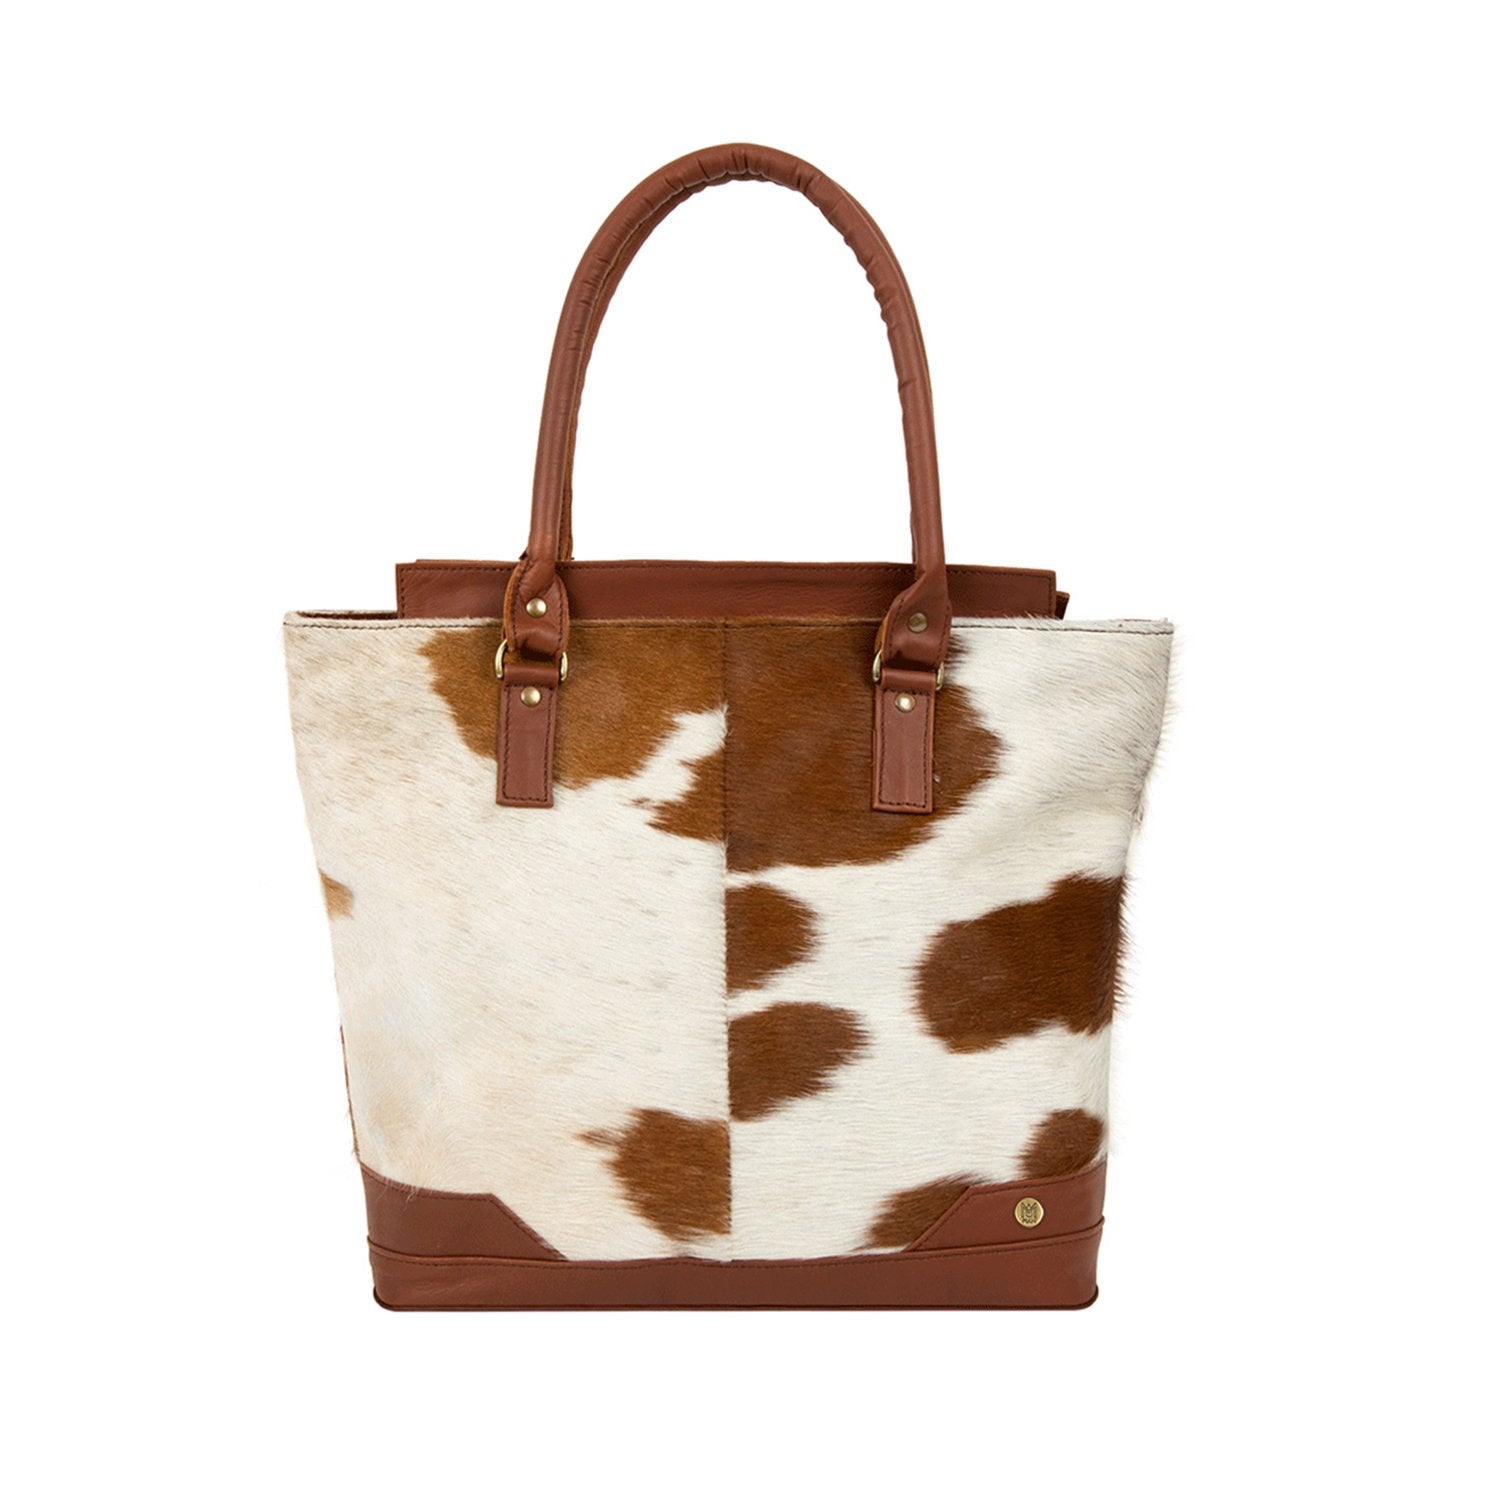 The Florence Tote